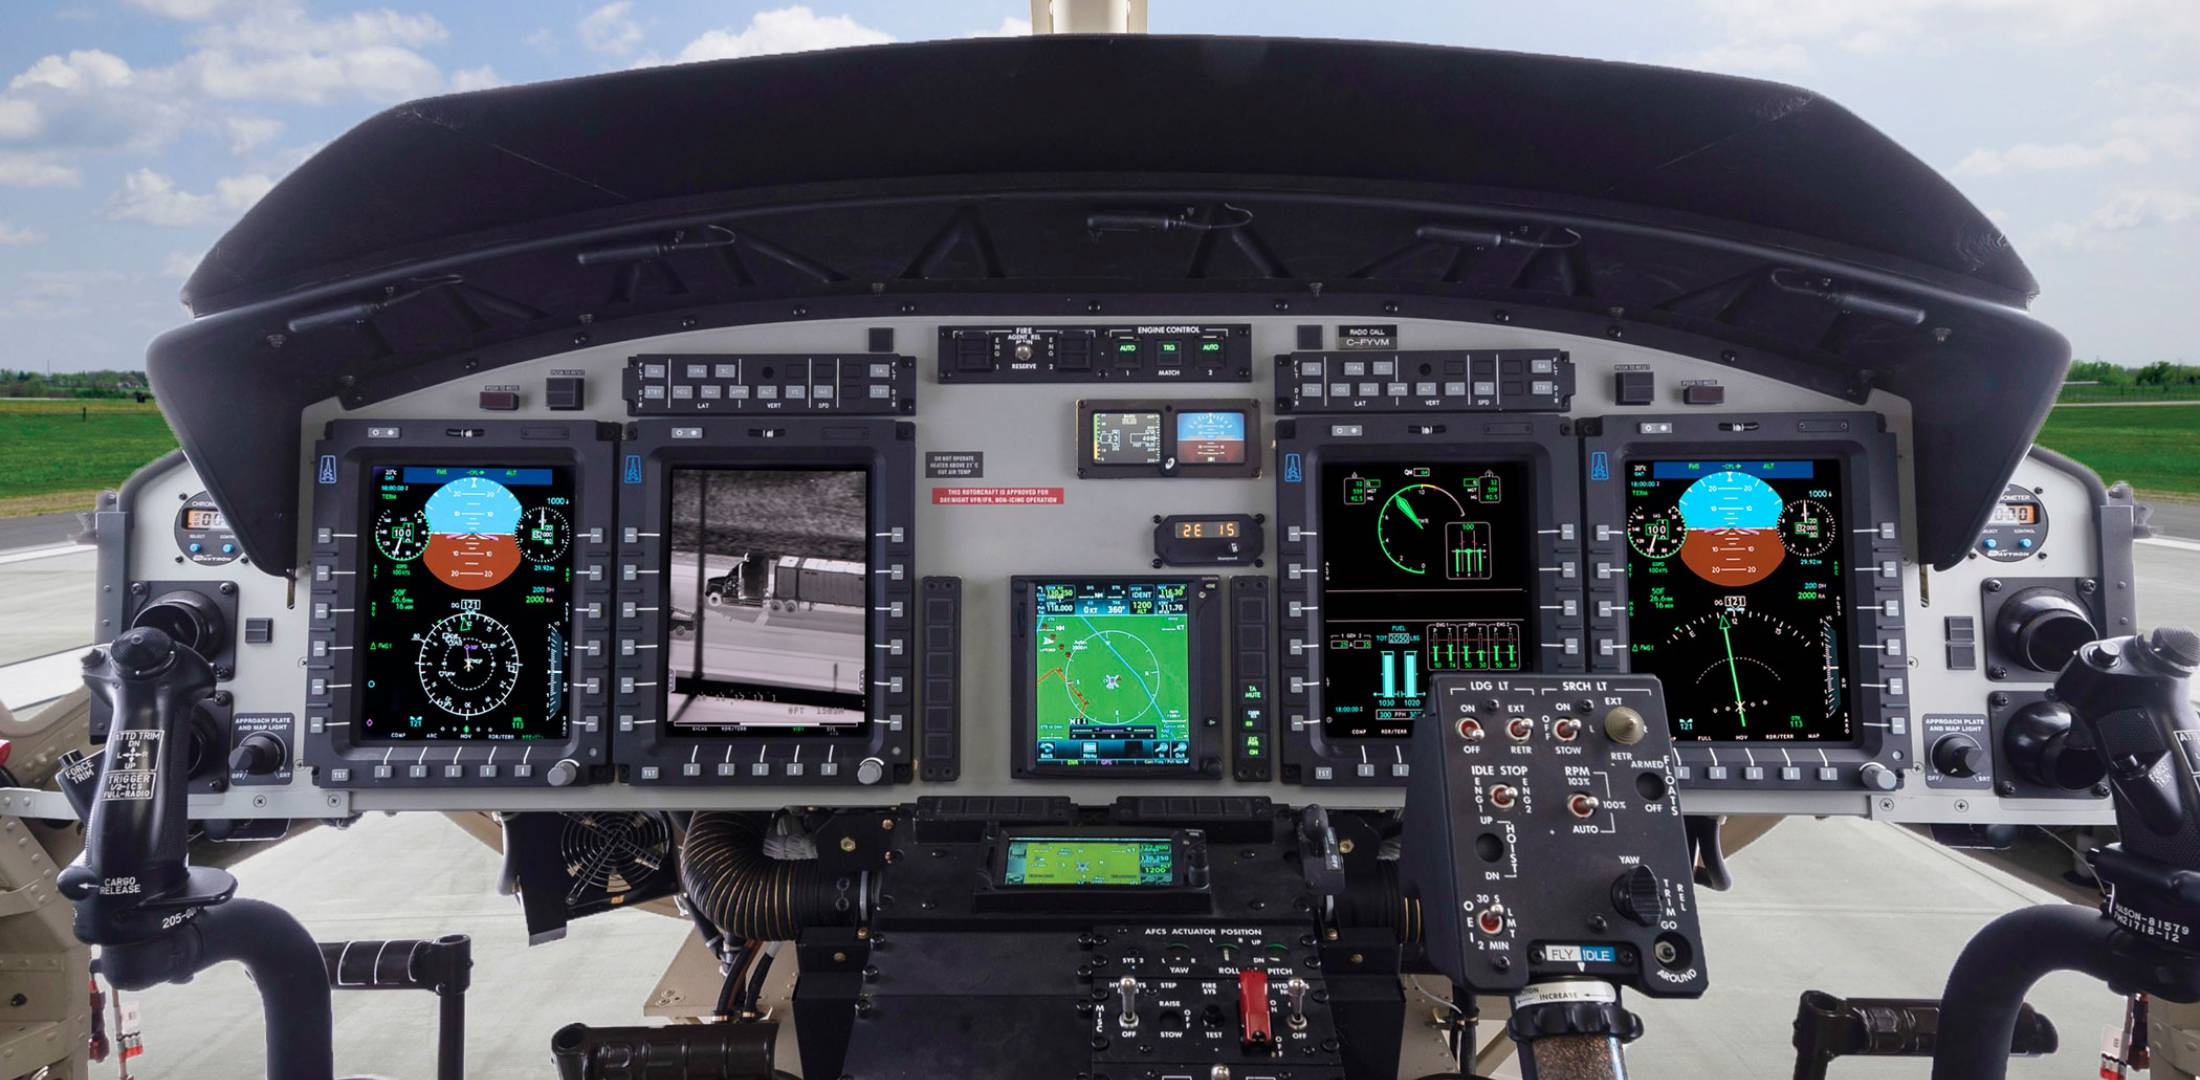 Astronautics is providing its Badger Pro+ integrated flight display system to Bell